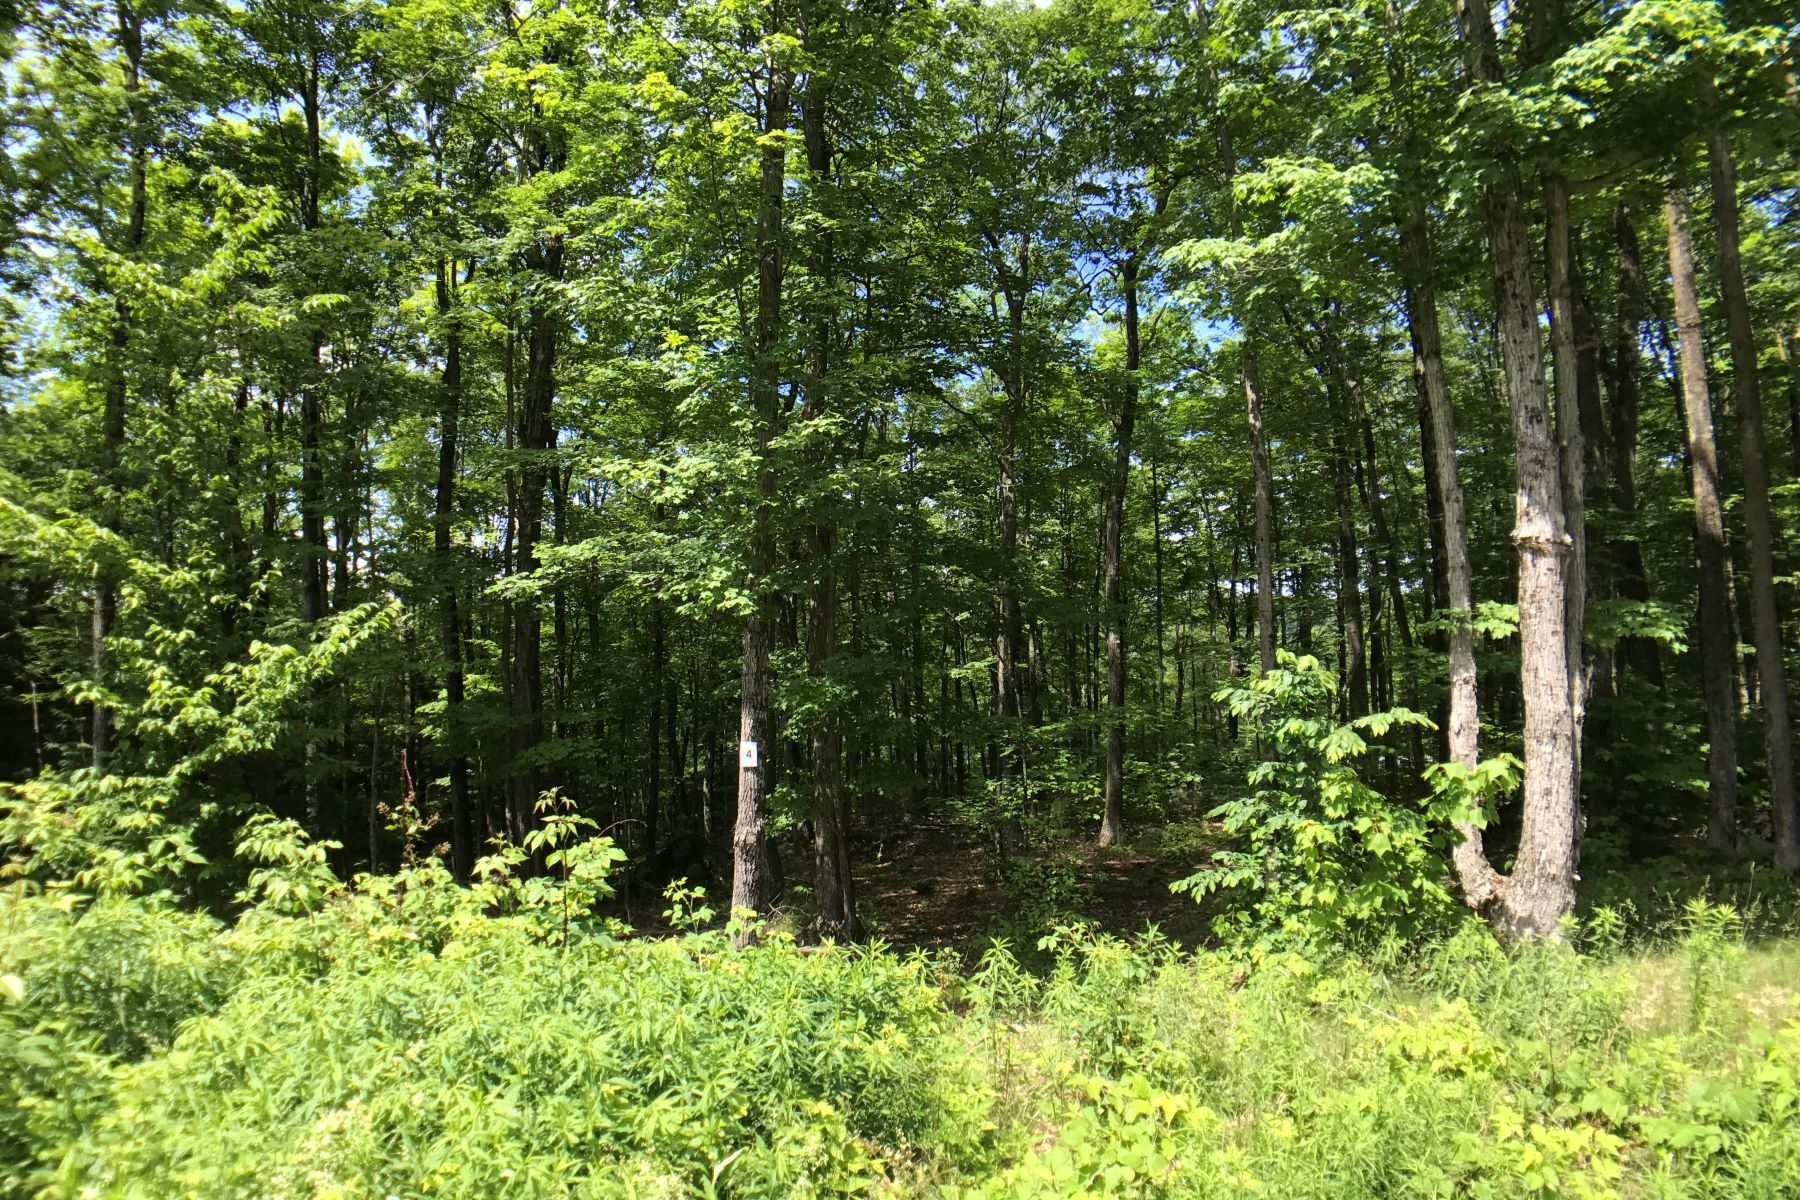 Terrain pour l Vente à Affordable Ready-to-Build Parcel with Shared Waterfront Access Lot #4, Moose Dr Lee, Massachusetts 01238 États-Unis